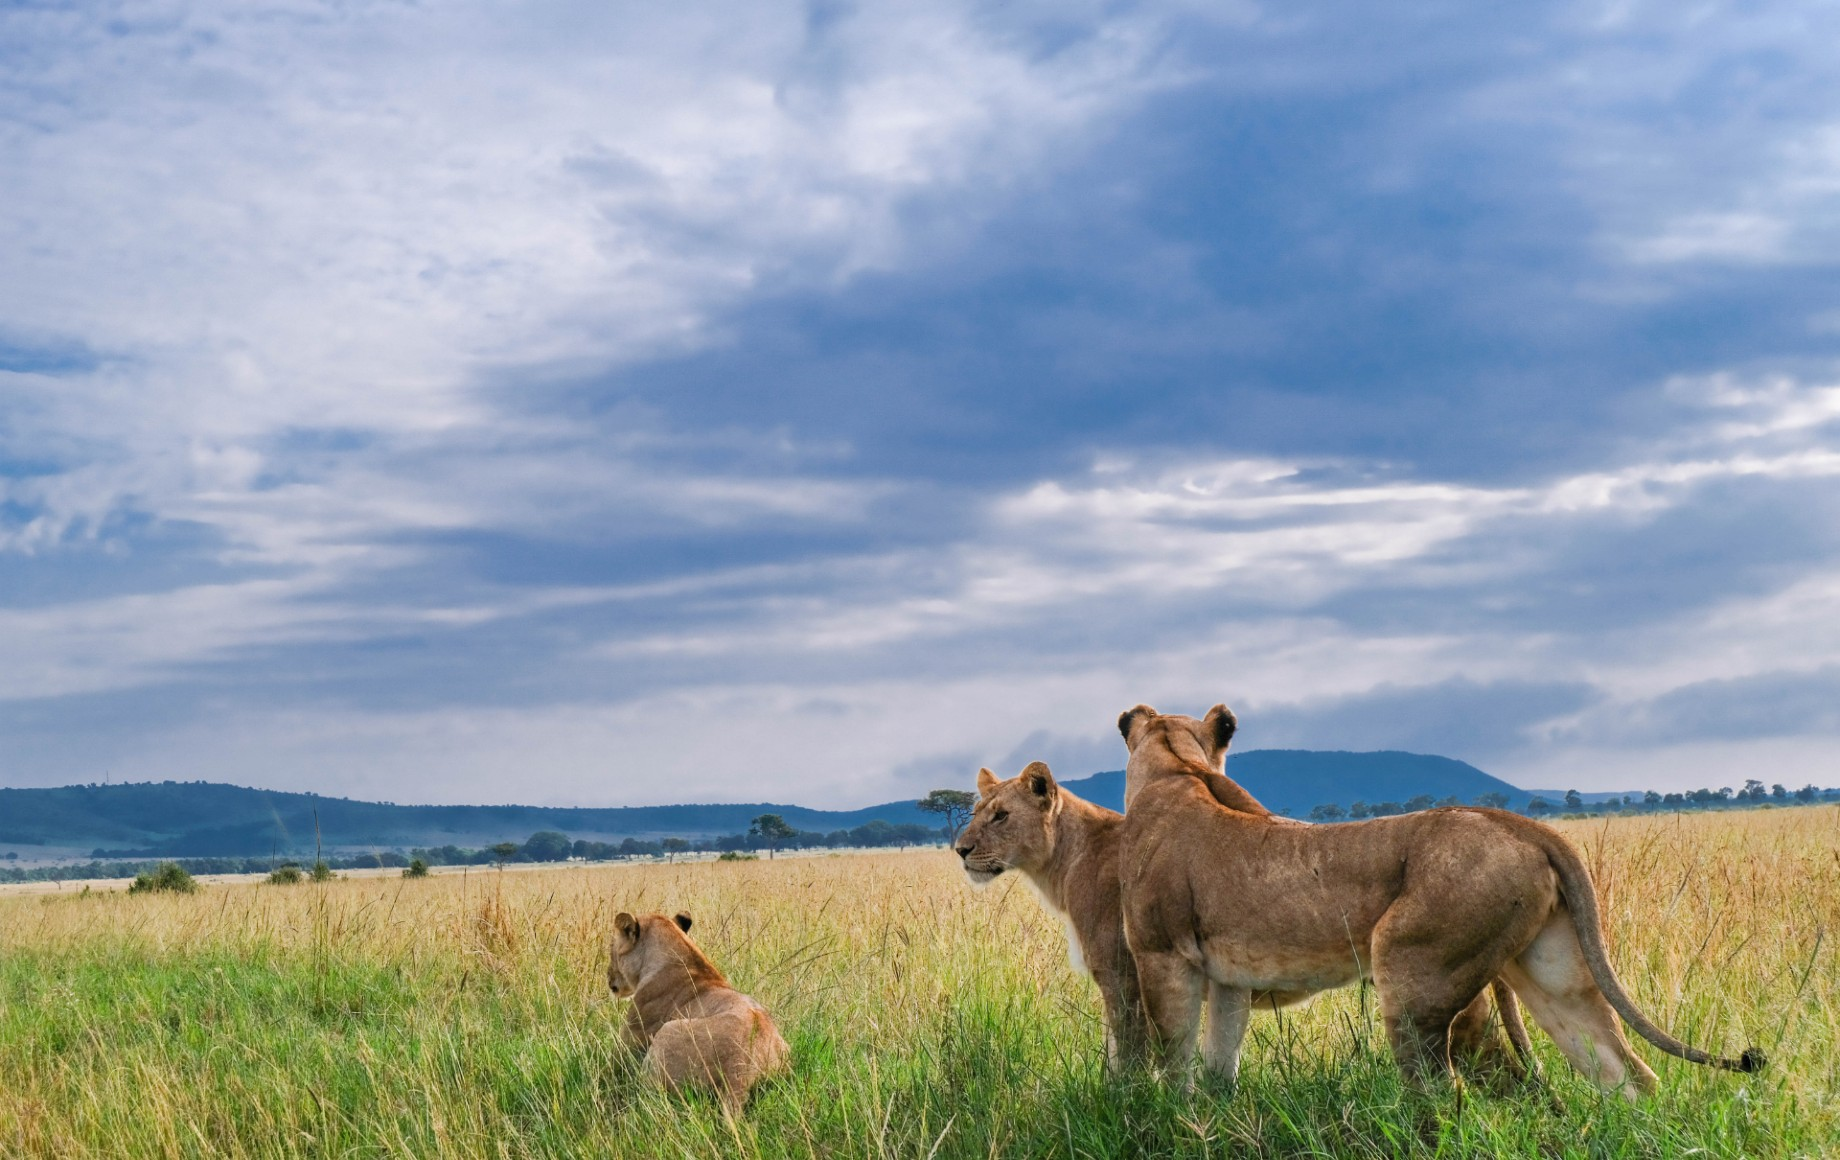 A family of lions in the grass